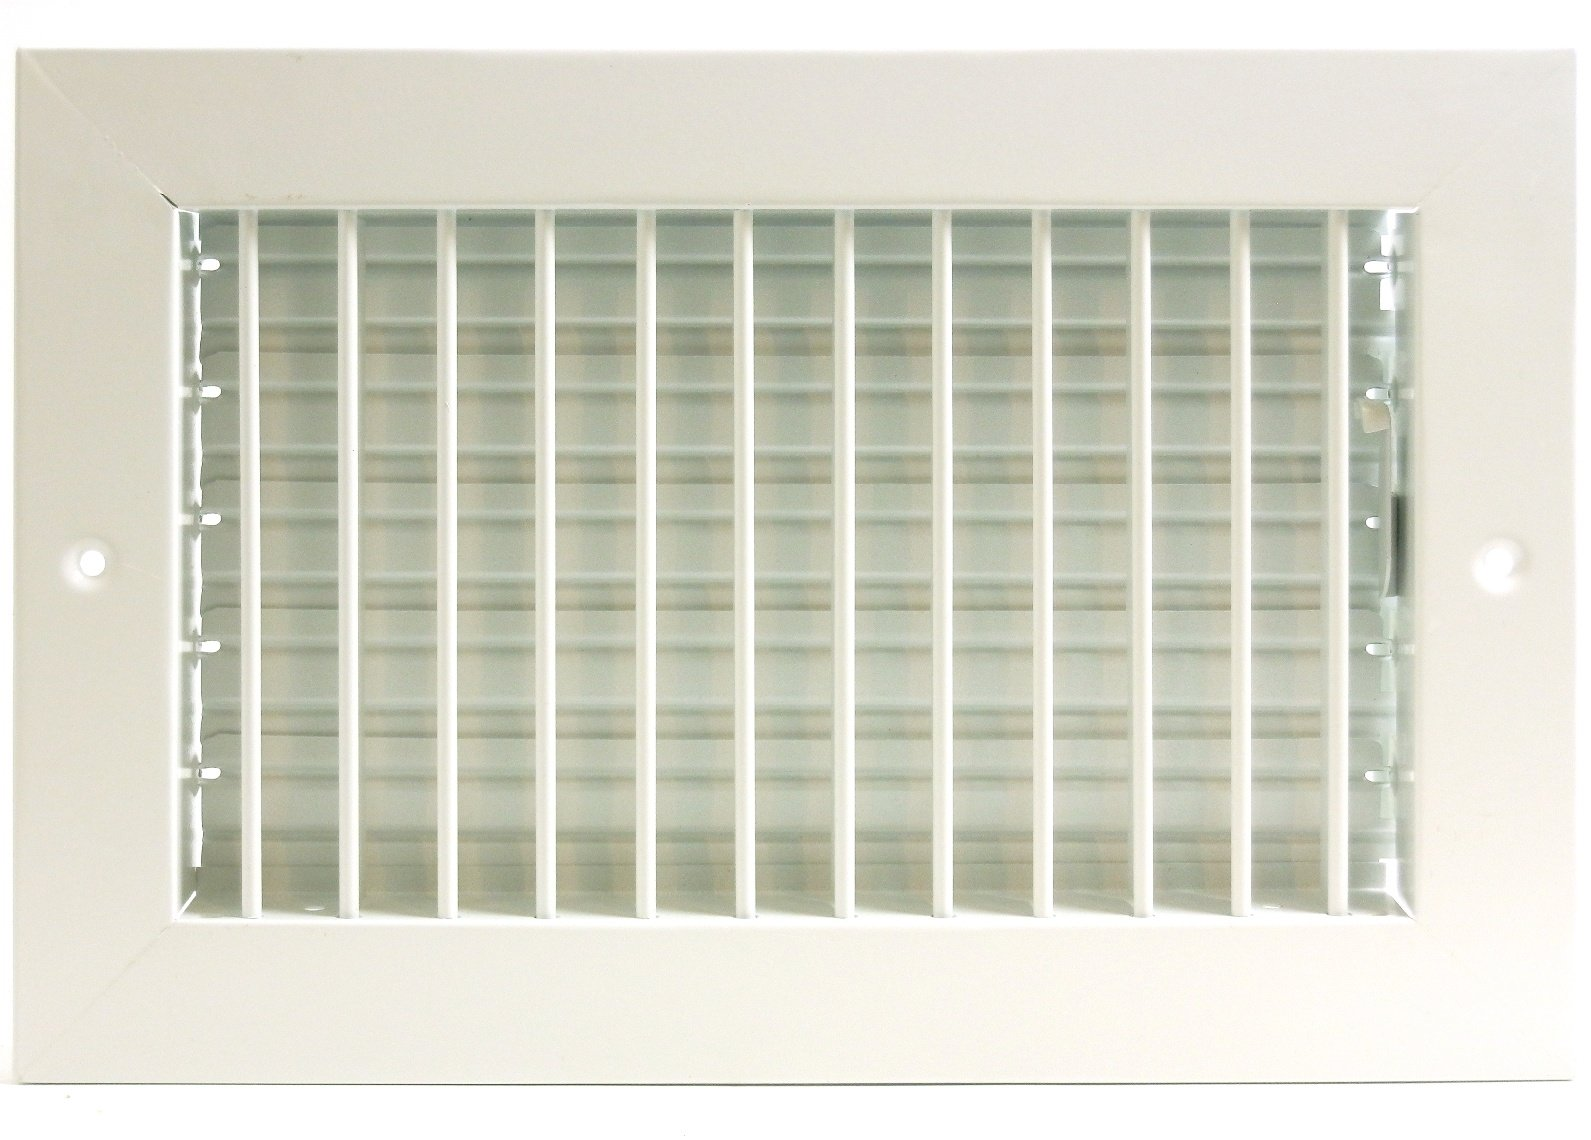 12'' x 8'' ADJUSTABLE DIFFUSER - Vent Duct Cover - Grille Register - Sidewall or Cieling - High Airflow